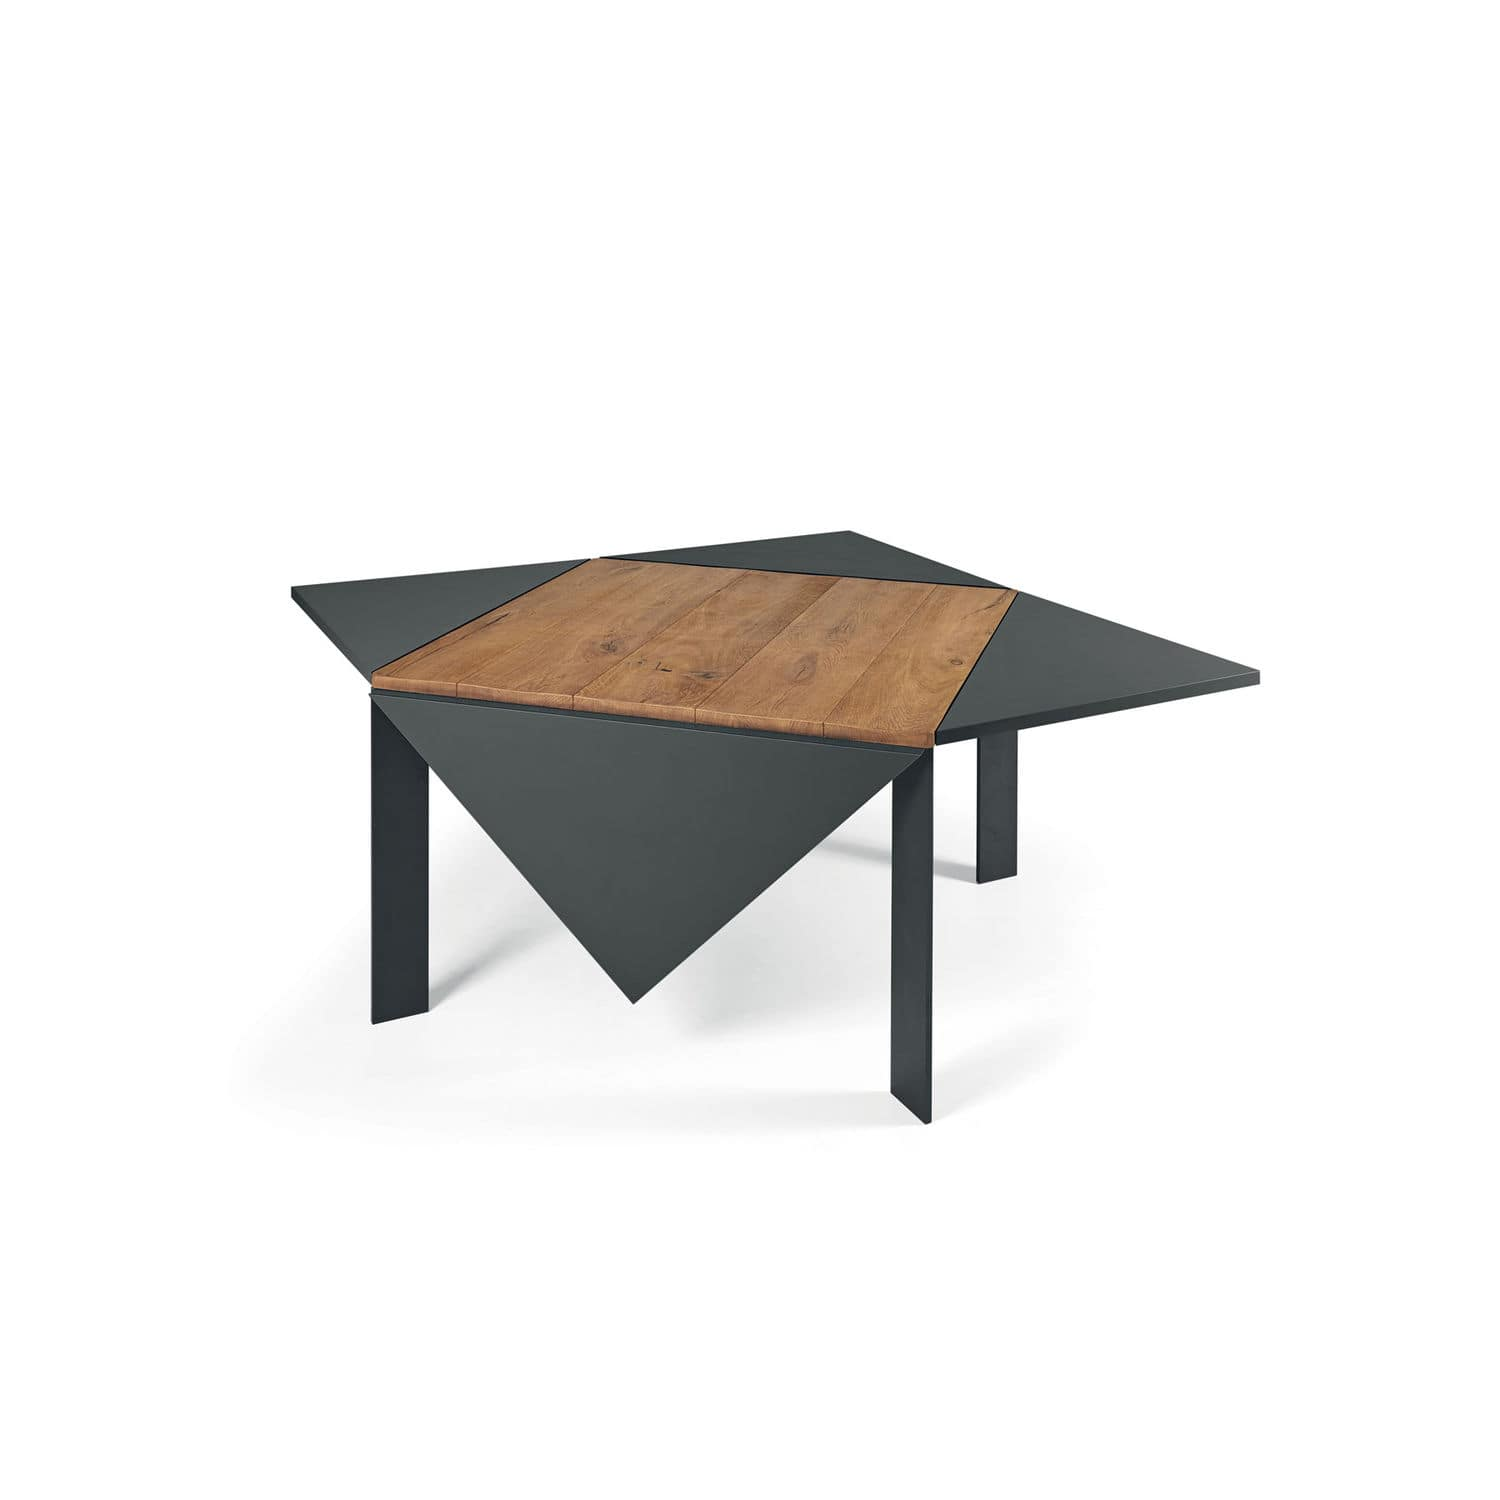 Contemporary dining table wooden square extending LOTO by